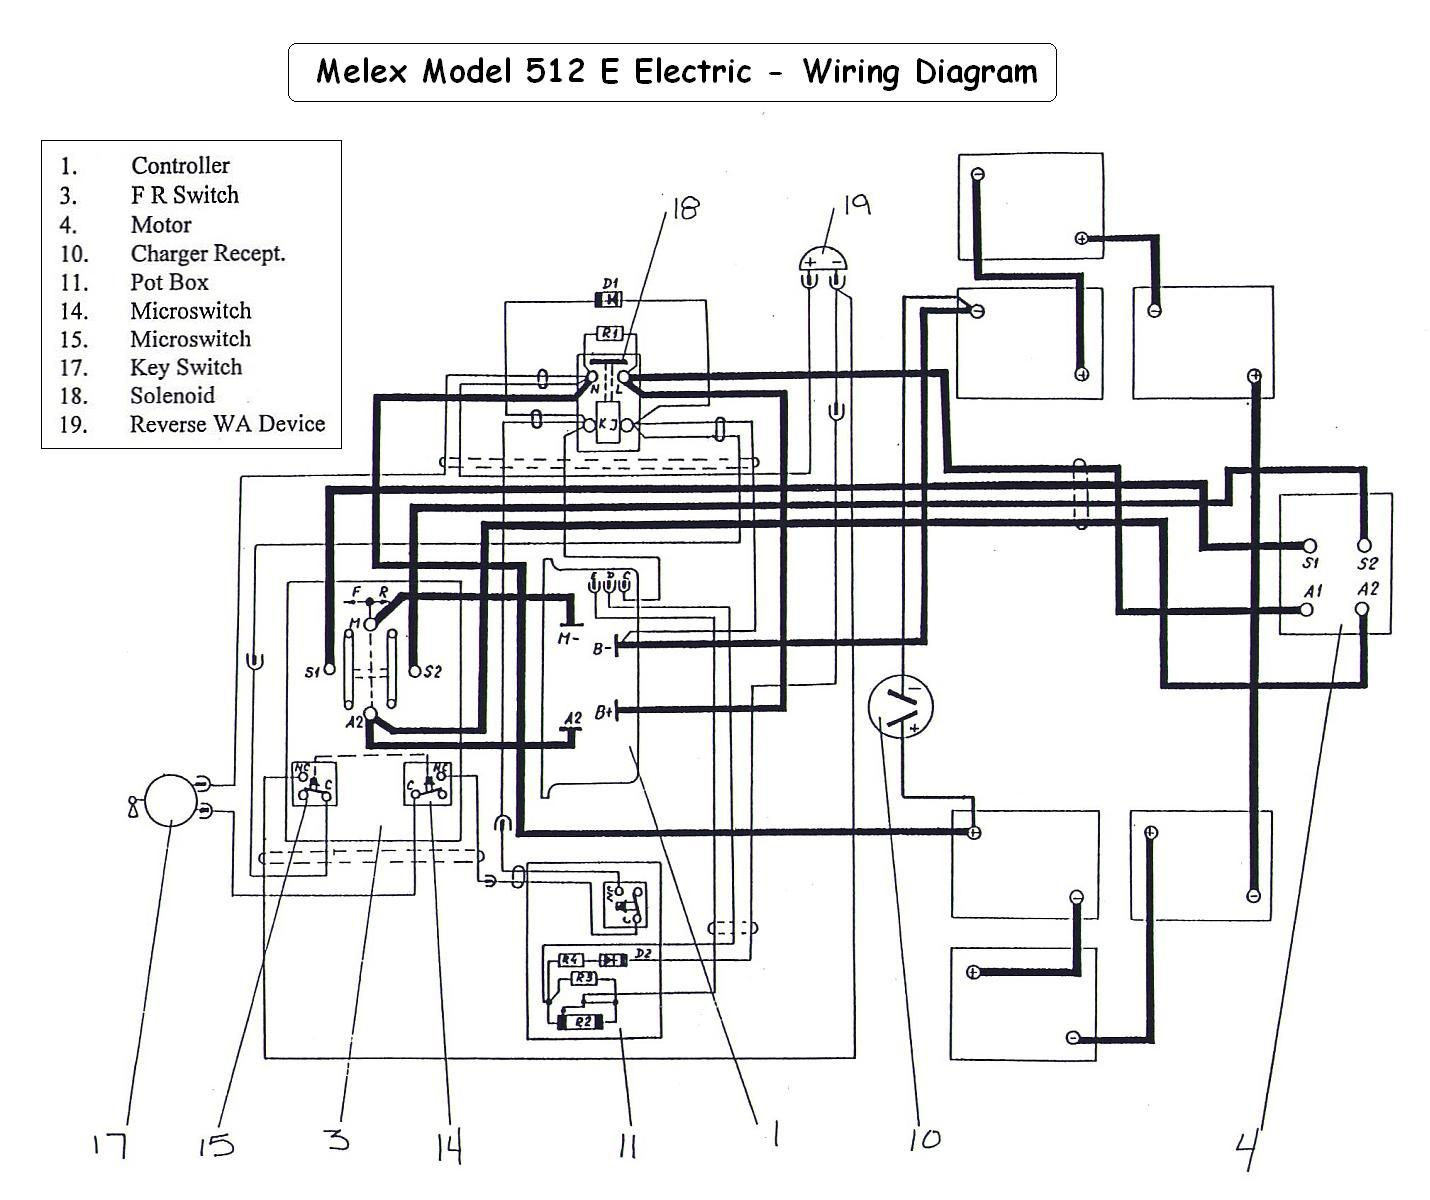 golf cart solenoid wiring diagram 3 way switch guitar 36 volt taylor dunn parts